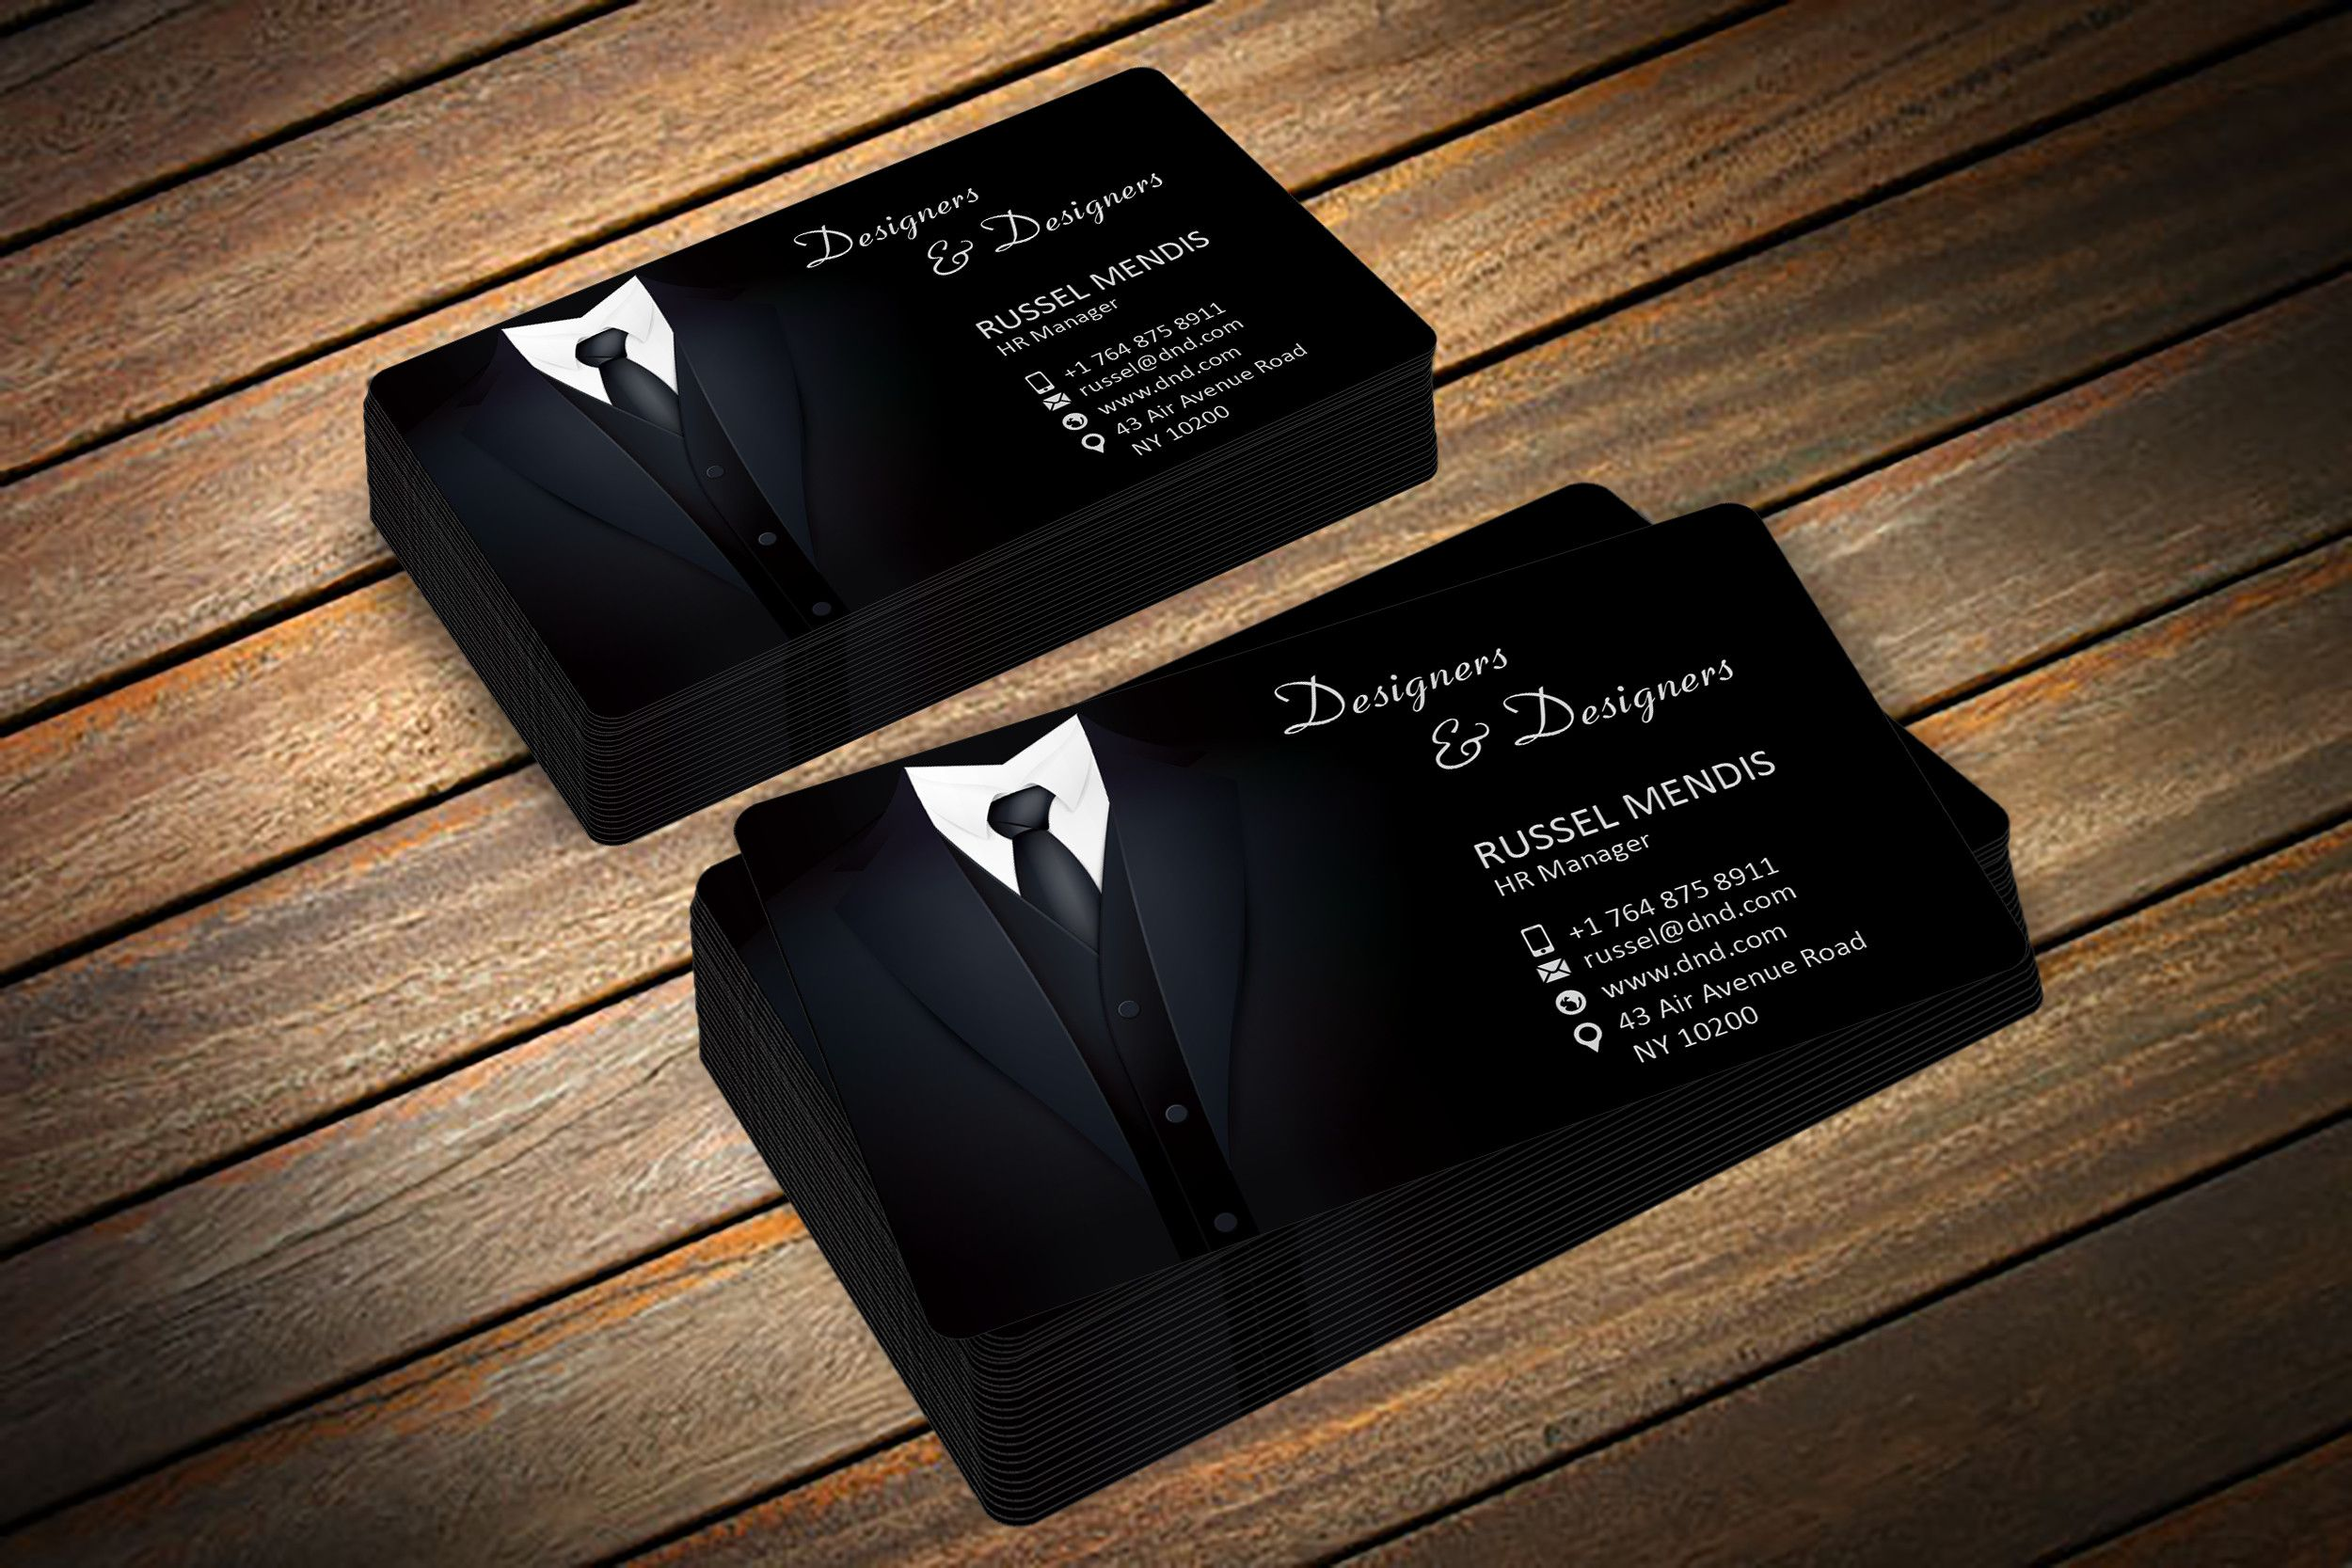 Create modern cut out business cards | Business cards, Business ...